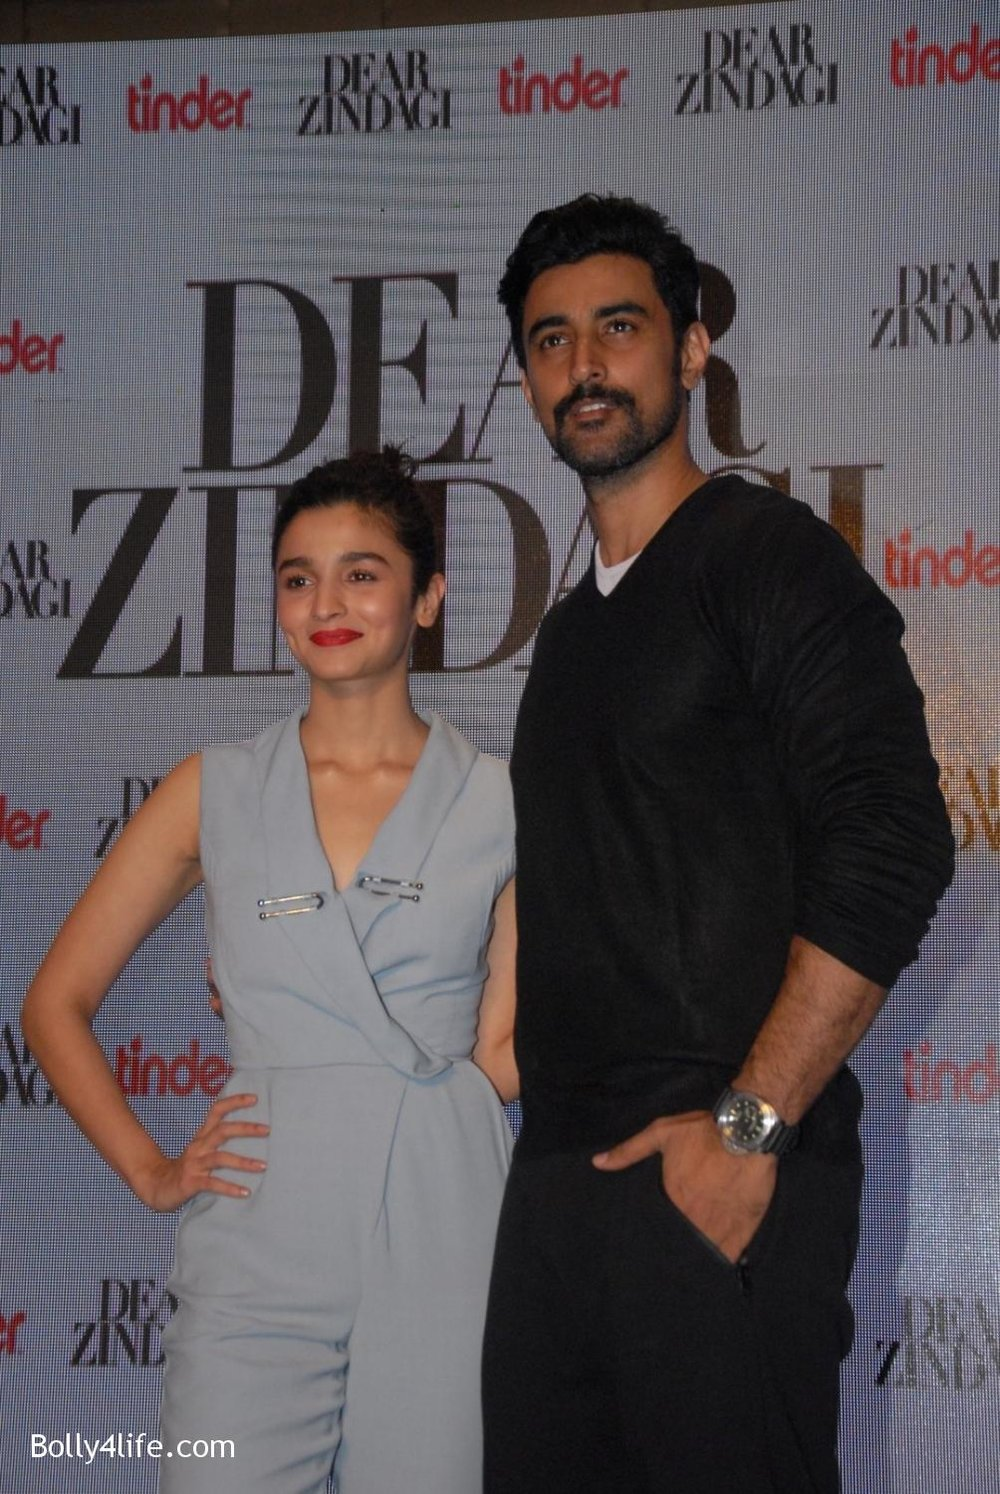 Alia-Bhatt-and-Kunal-Kapoor-during-promotion-of-film-Dear-Zindagi-4.jpg